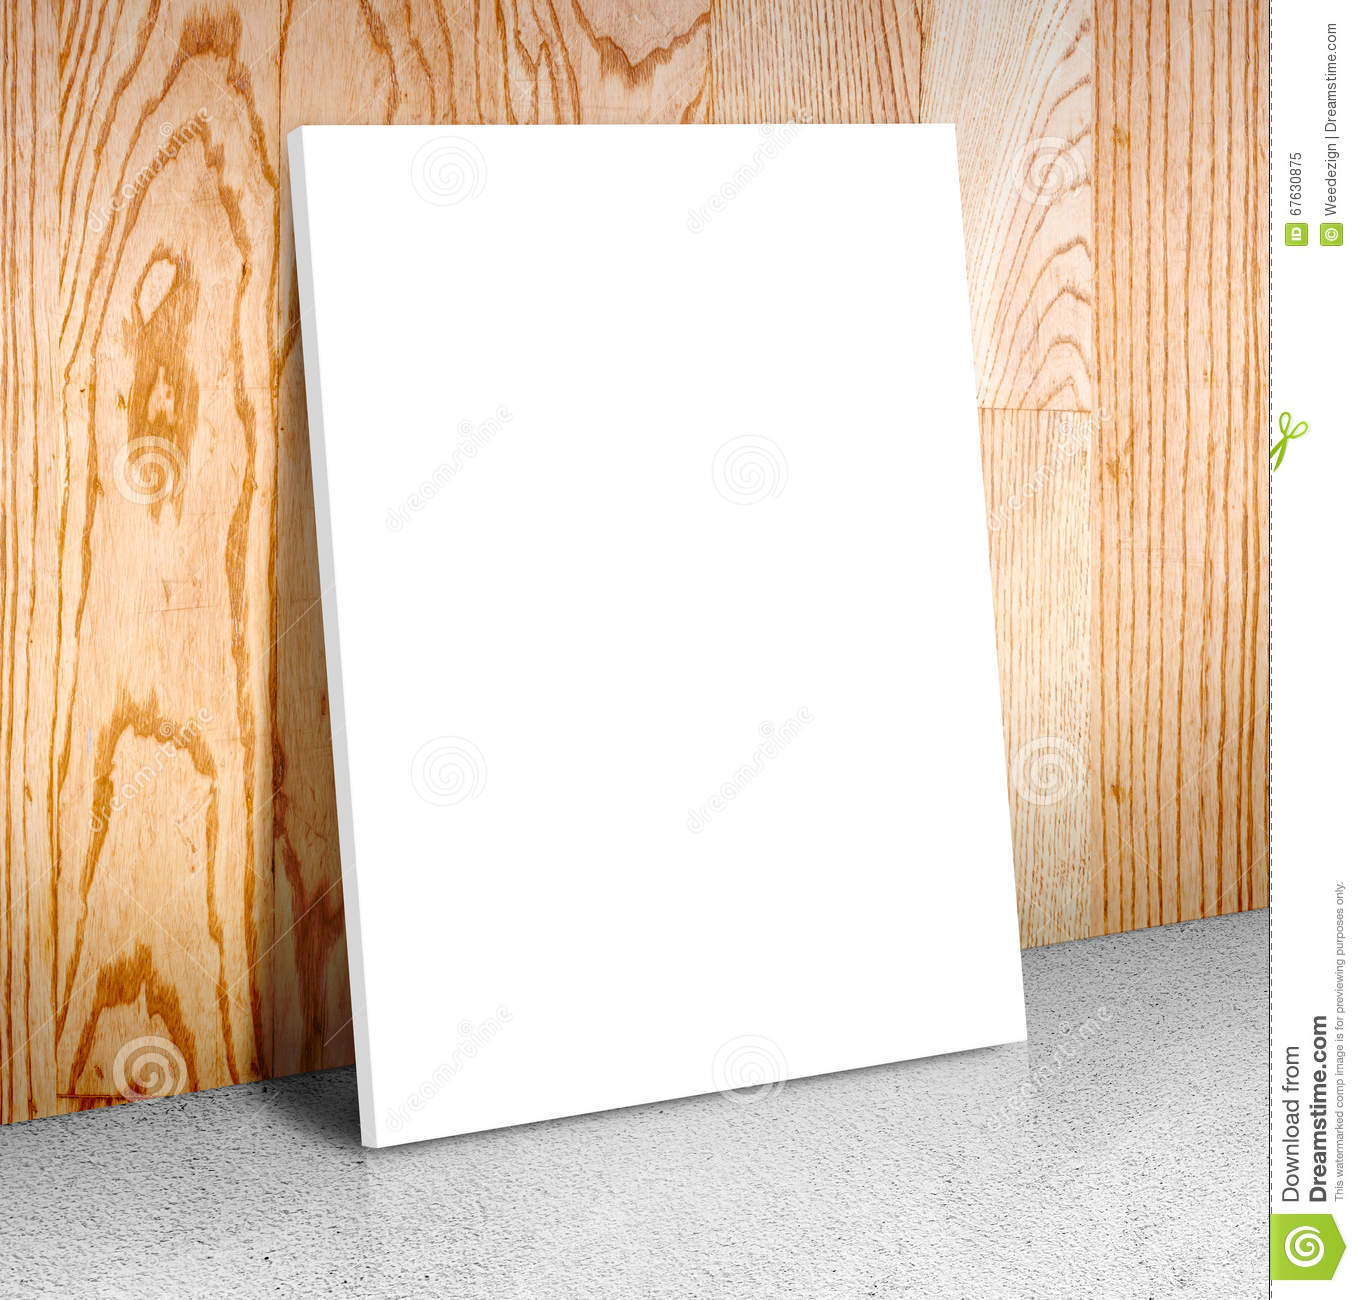 Blank White Poster Frame At Concrete Floor And Wooden Wall, Canv ...